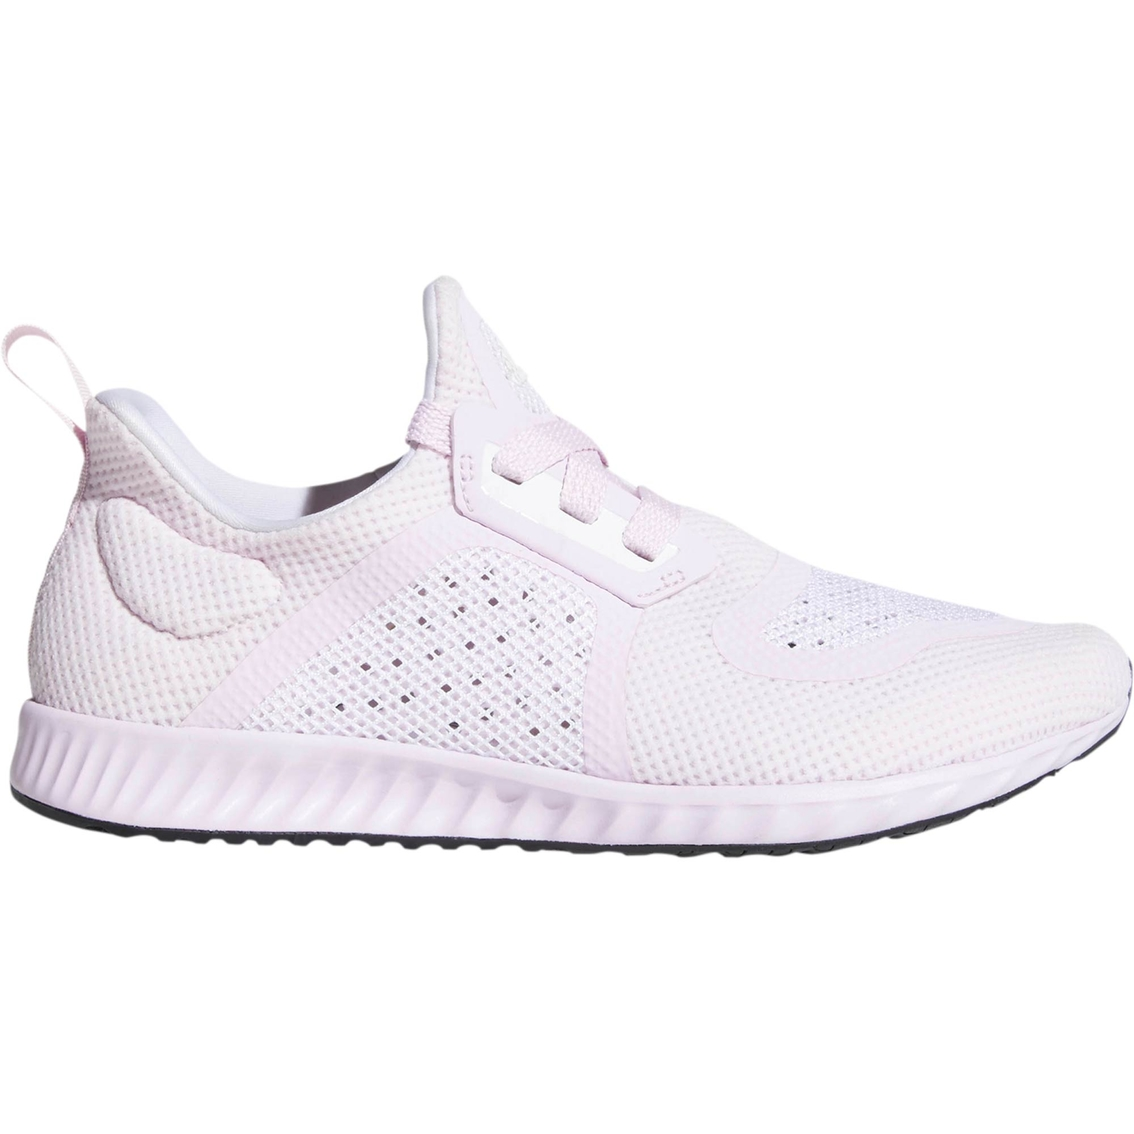 buy online 5feea a6eea adidas Womens Edge Lux Clima Running Shoes